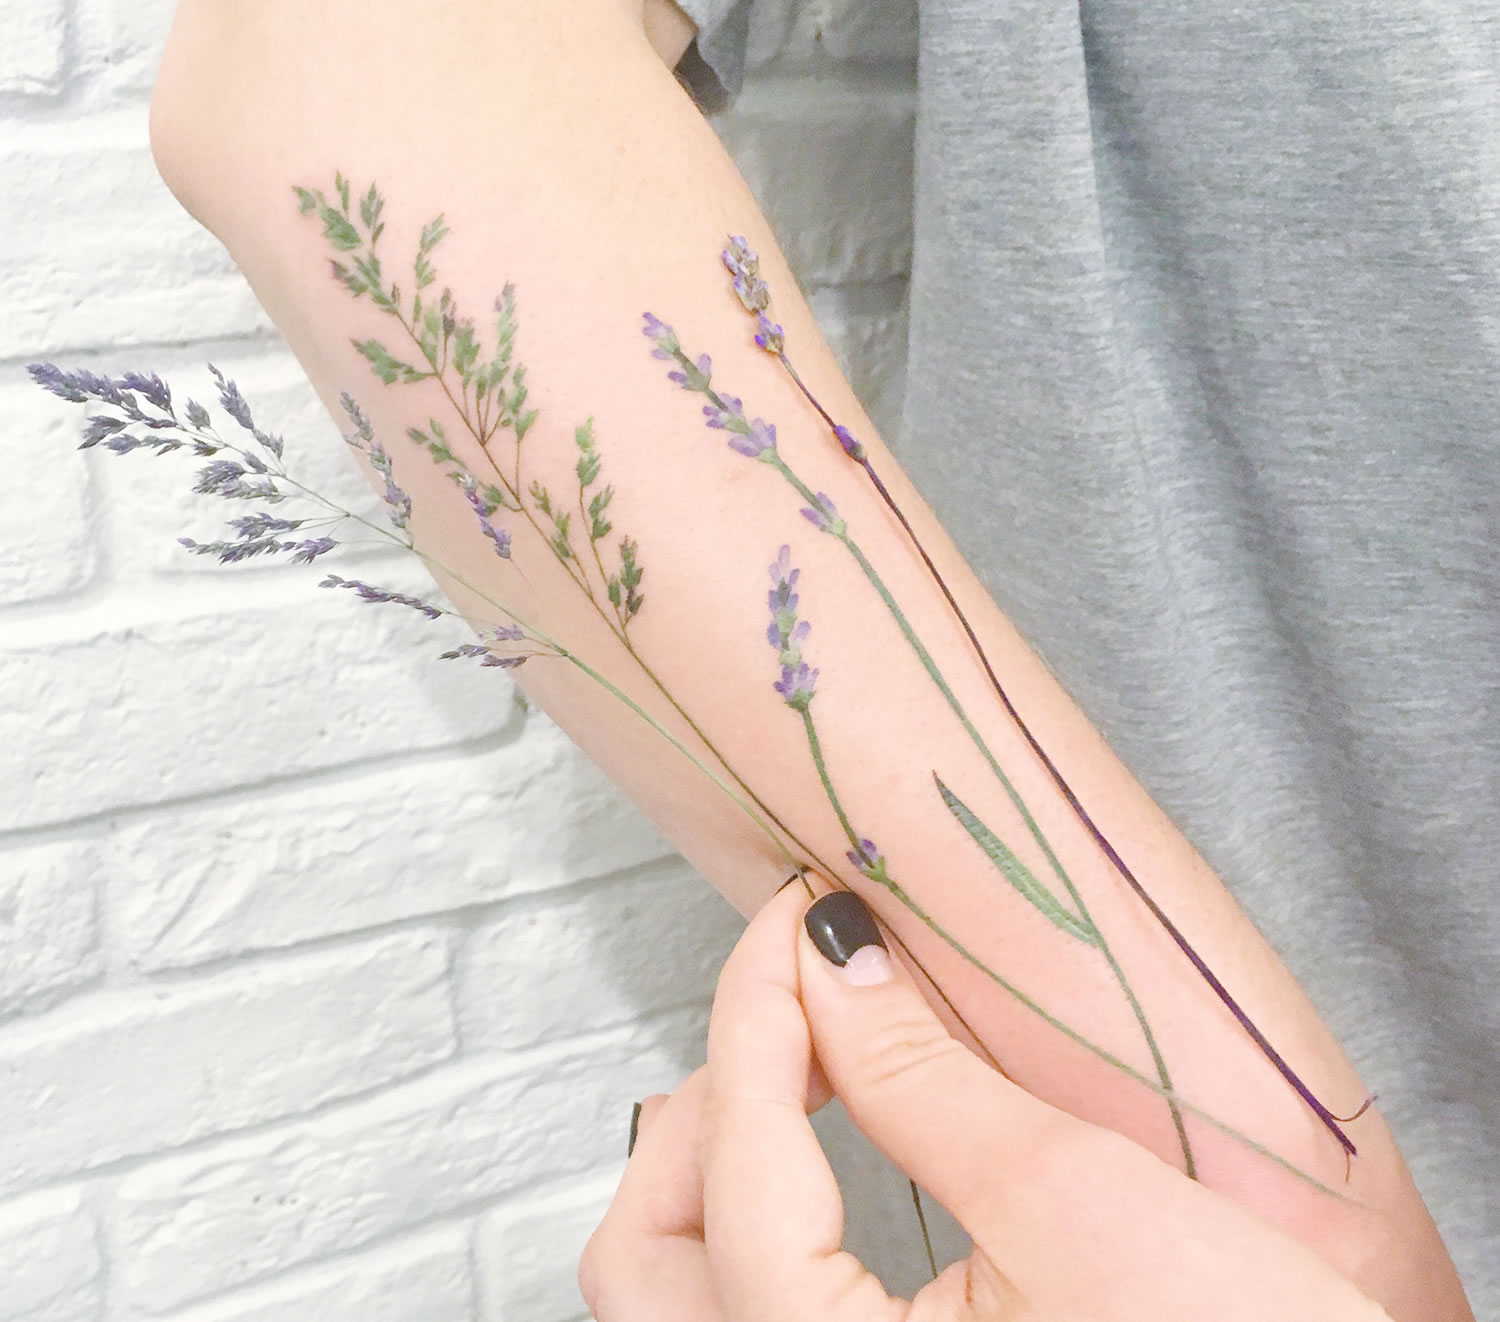 lavender tattoo on arm by rit kit, plant tattoo